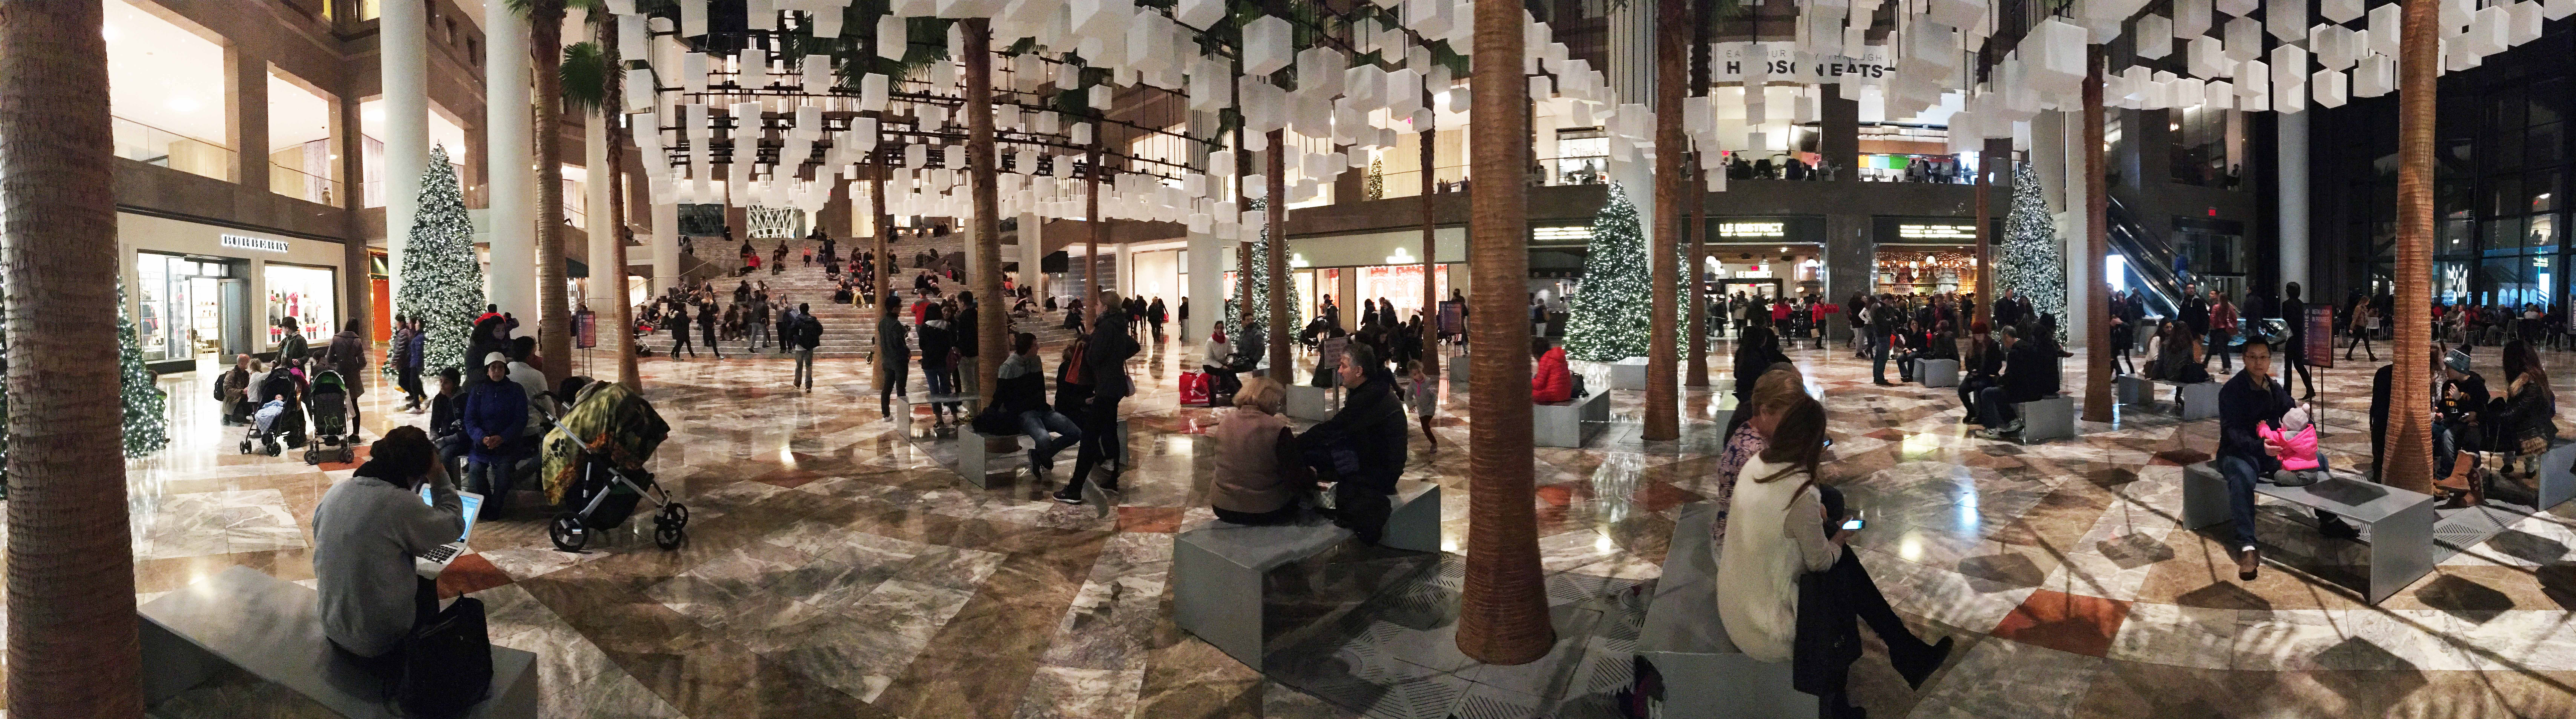 Brookfield Place Shows Some Life Batterypark Tv We Inform